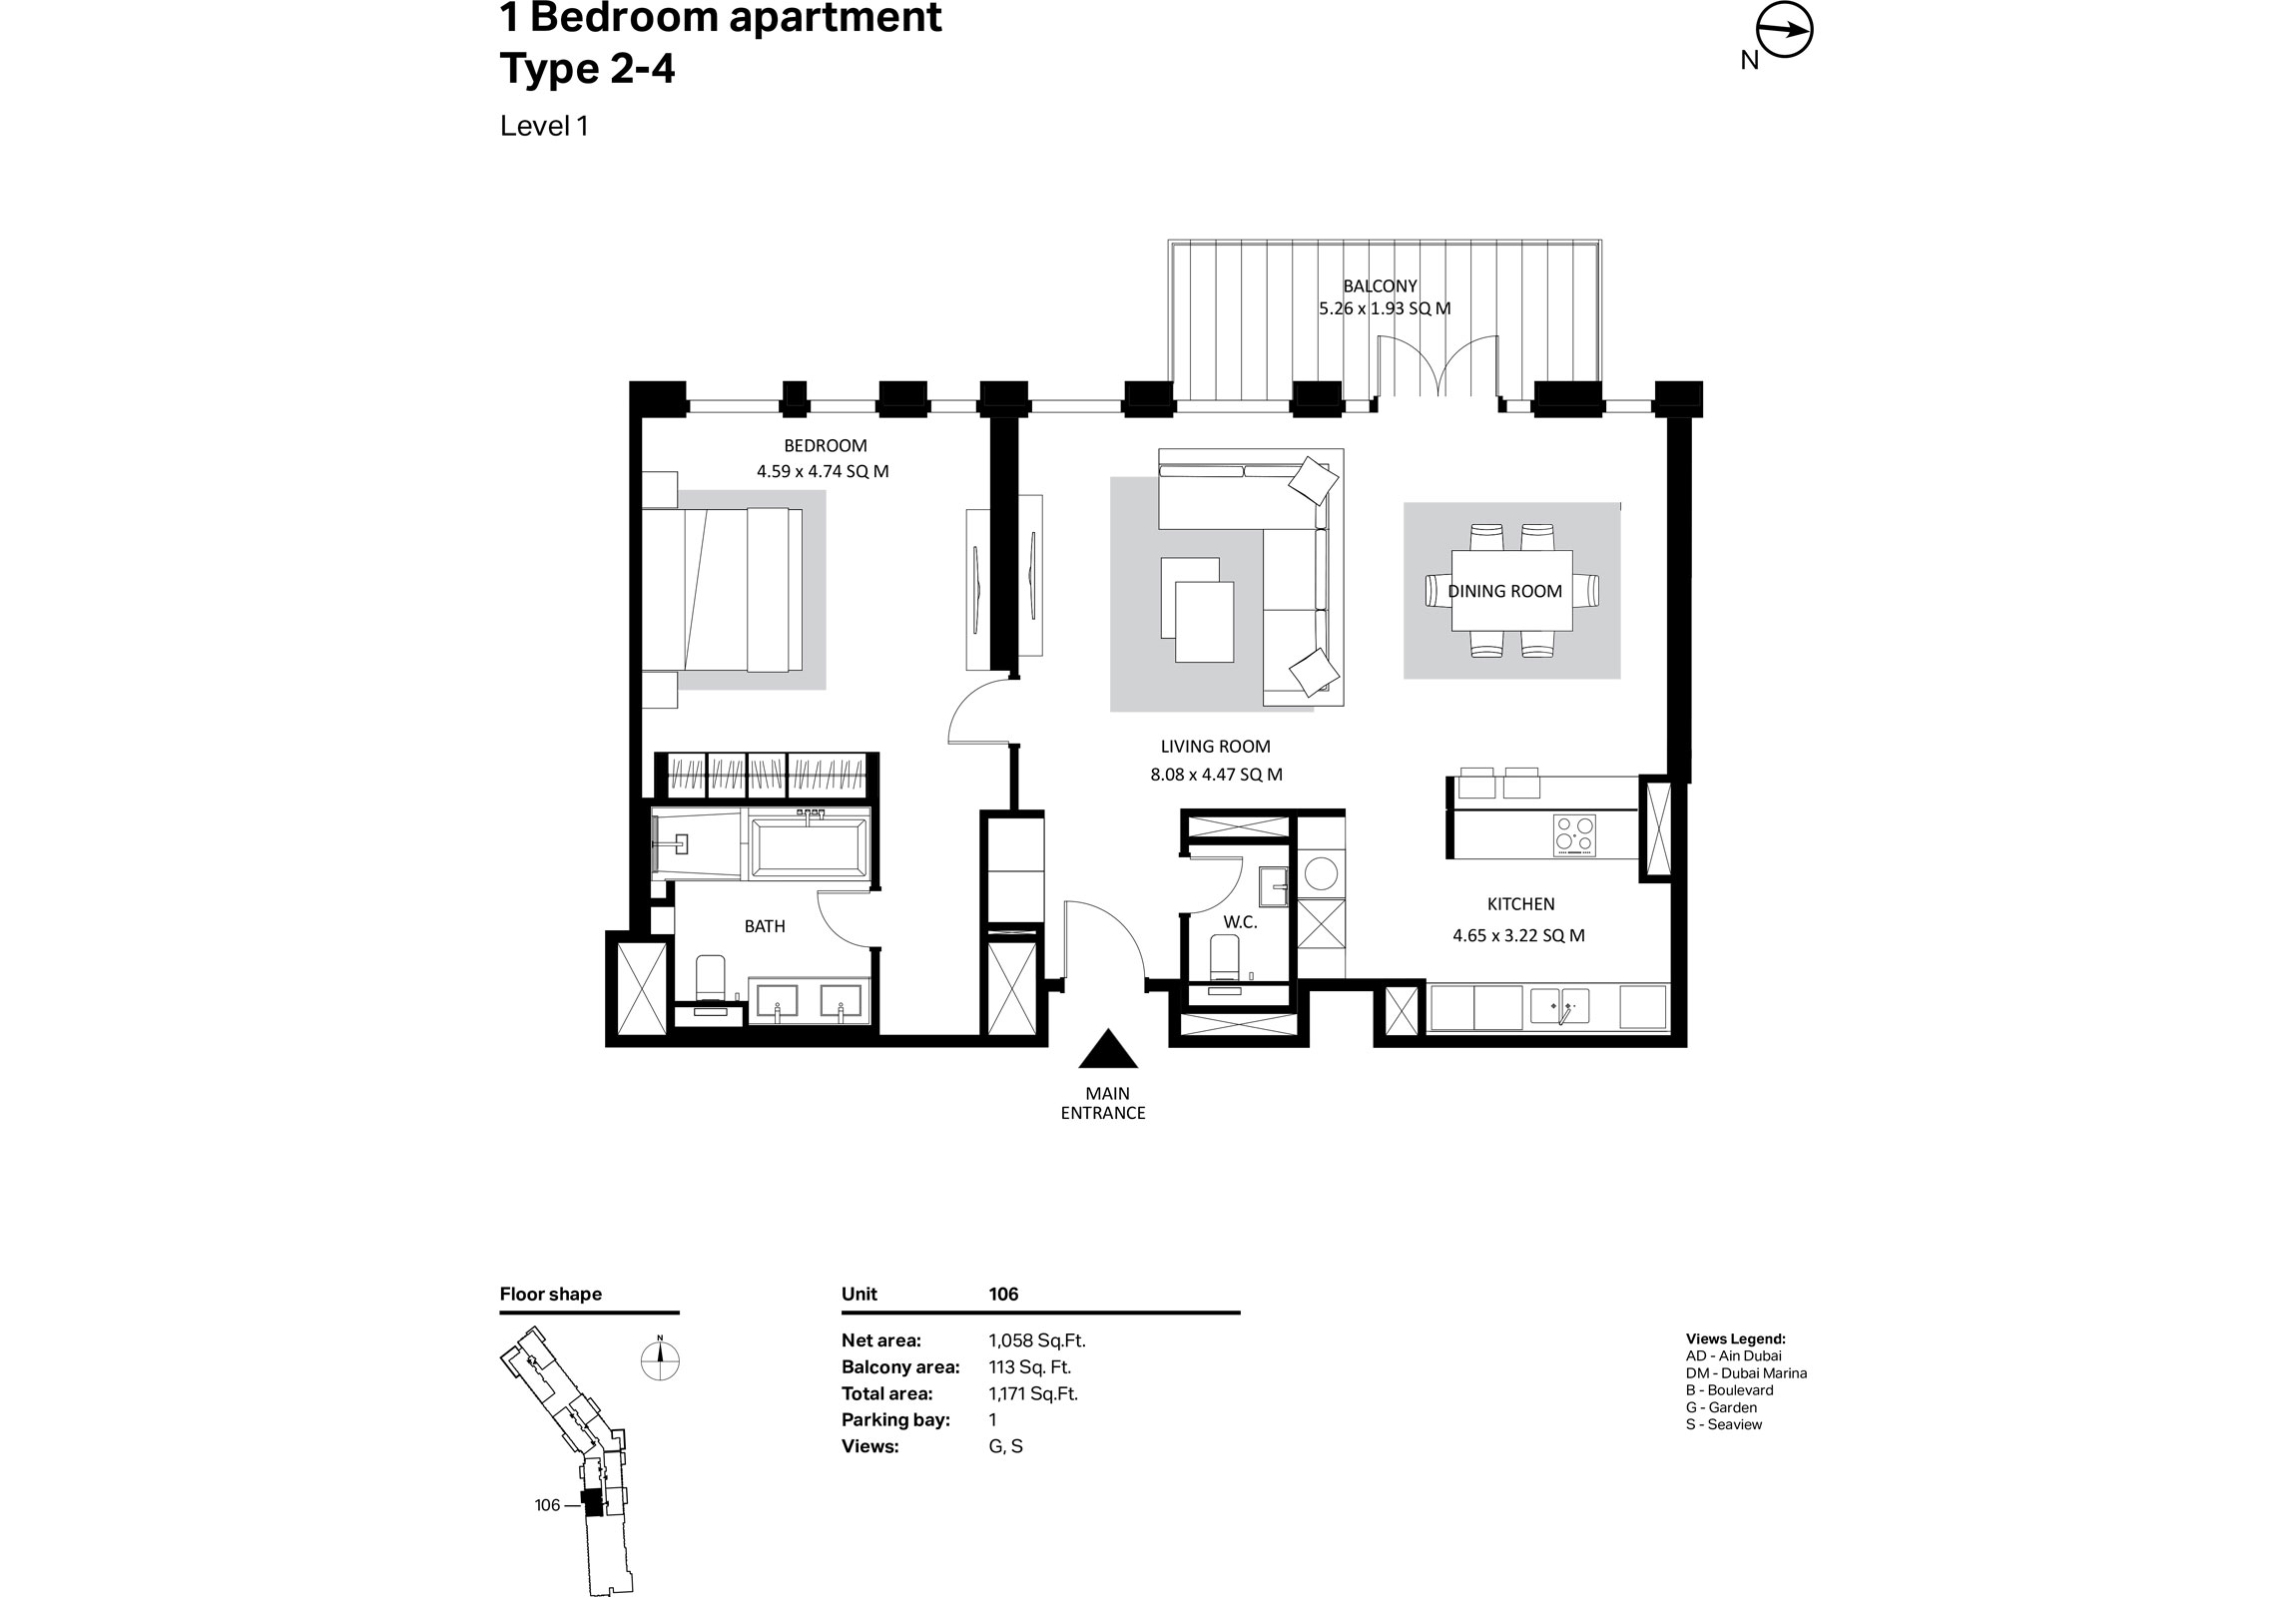 Building 2 - 1 Bedroom Type 2-4 Level 1 Size 1058    sq. ft.